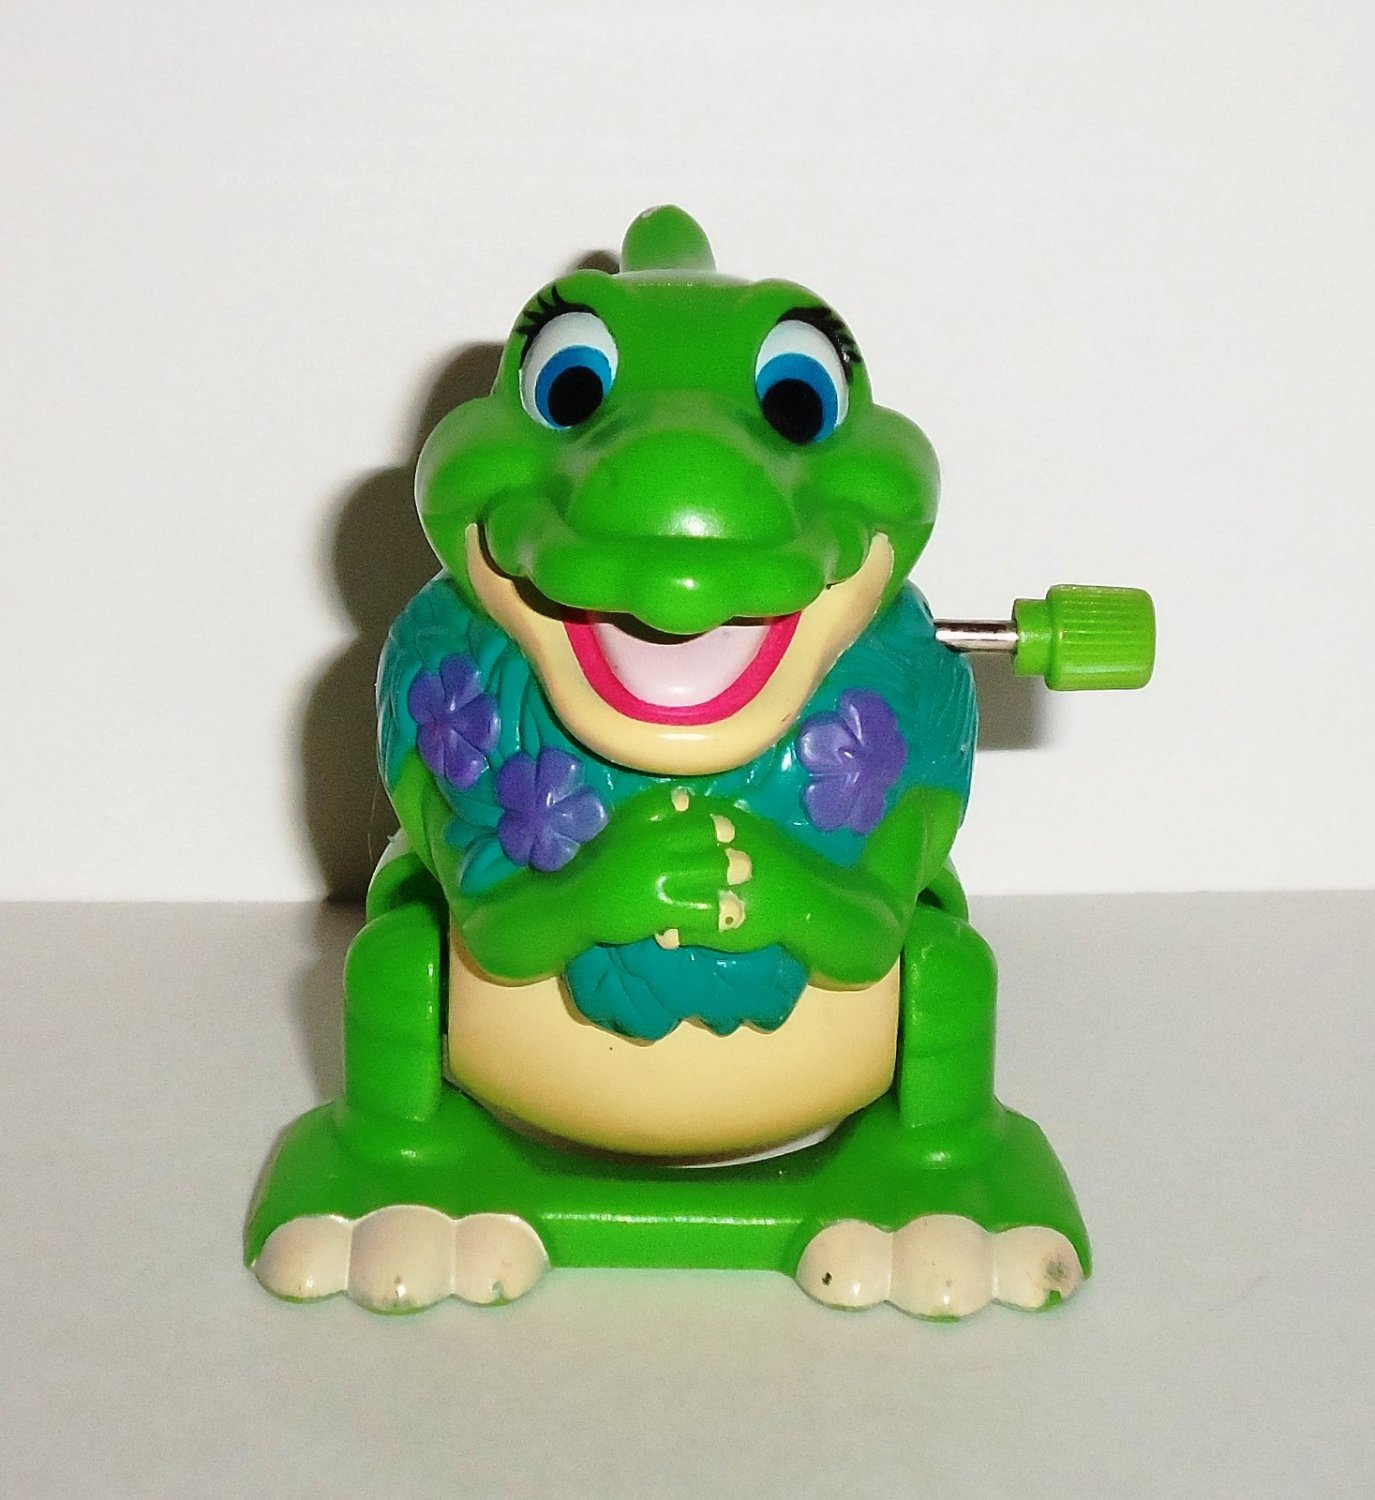 Burger King 1997 The Land Before Time Tumbling Ducky Kids Meal